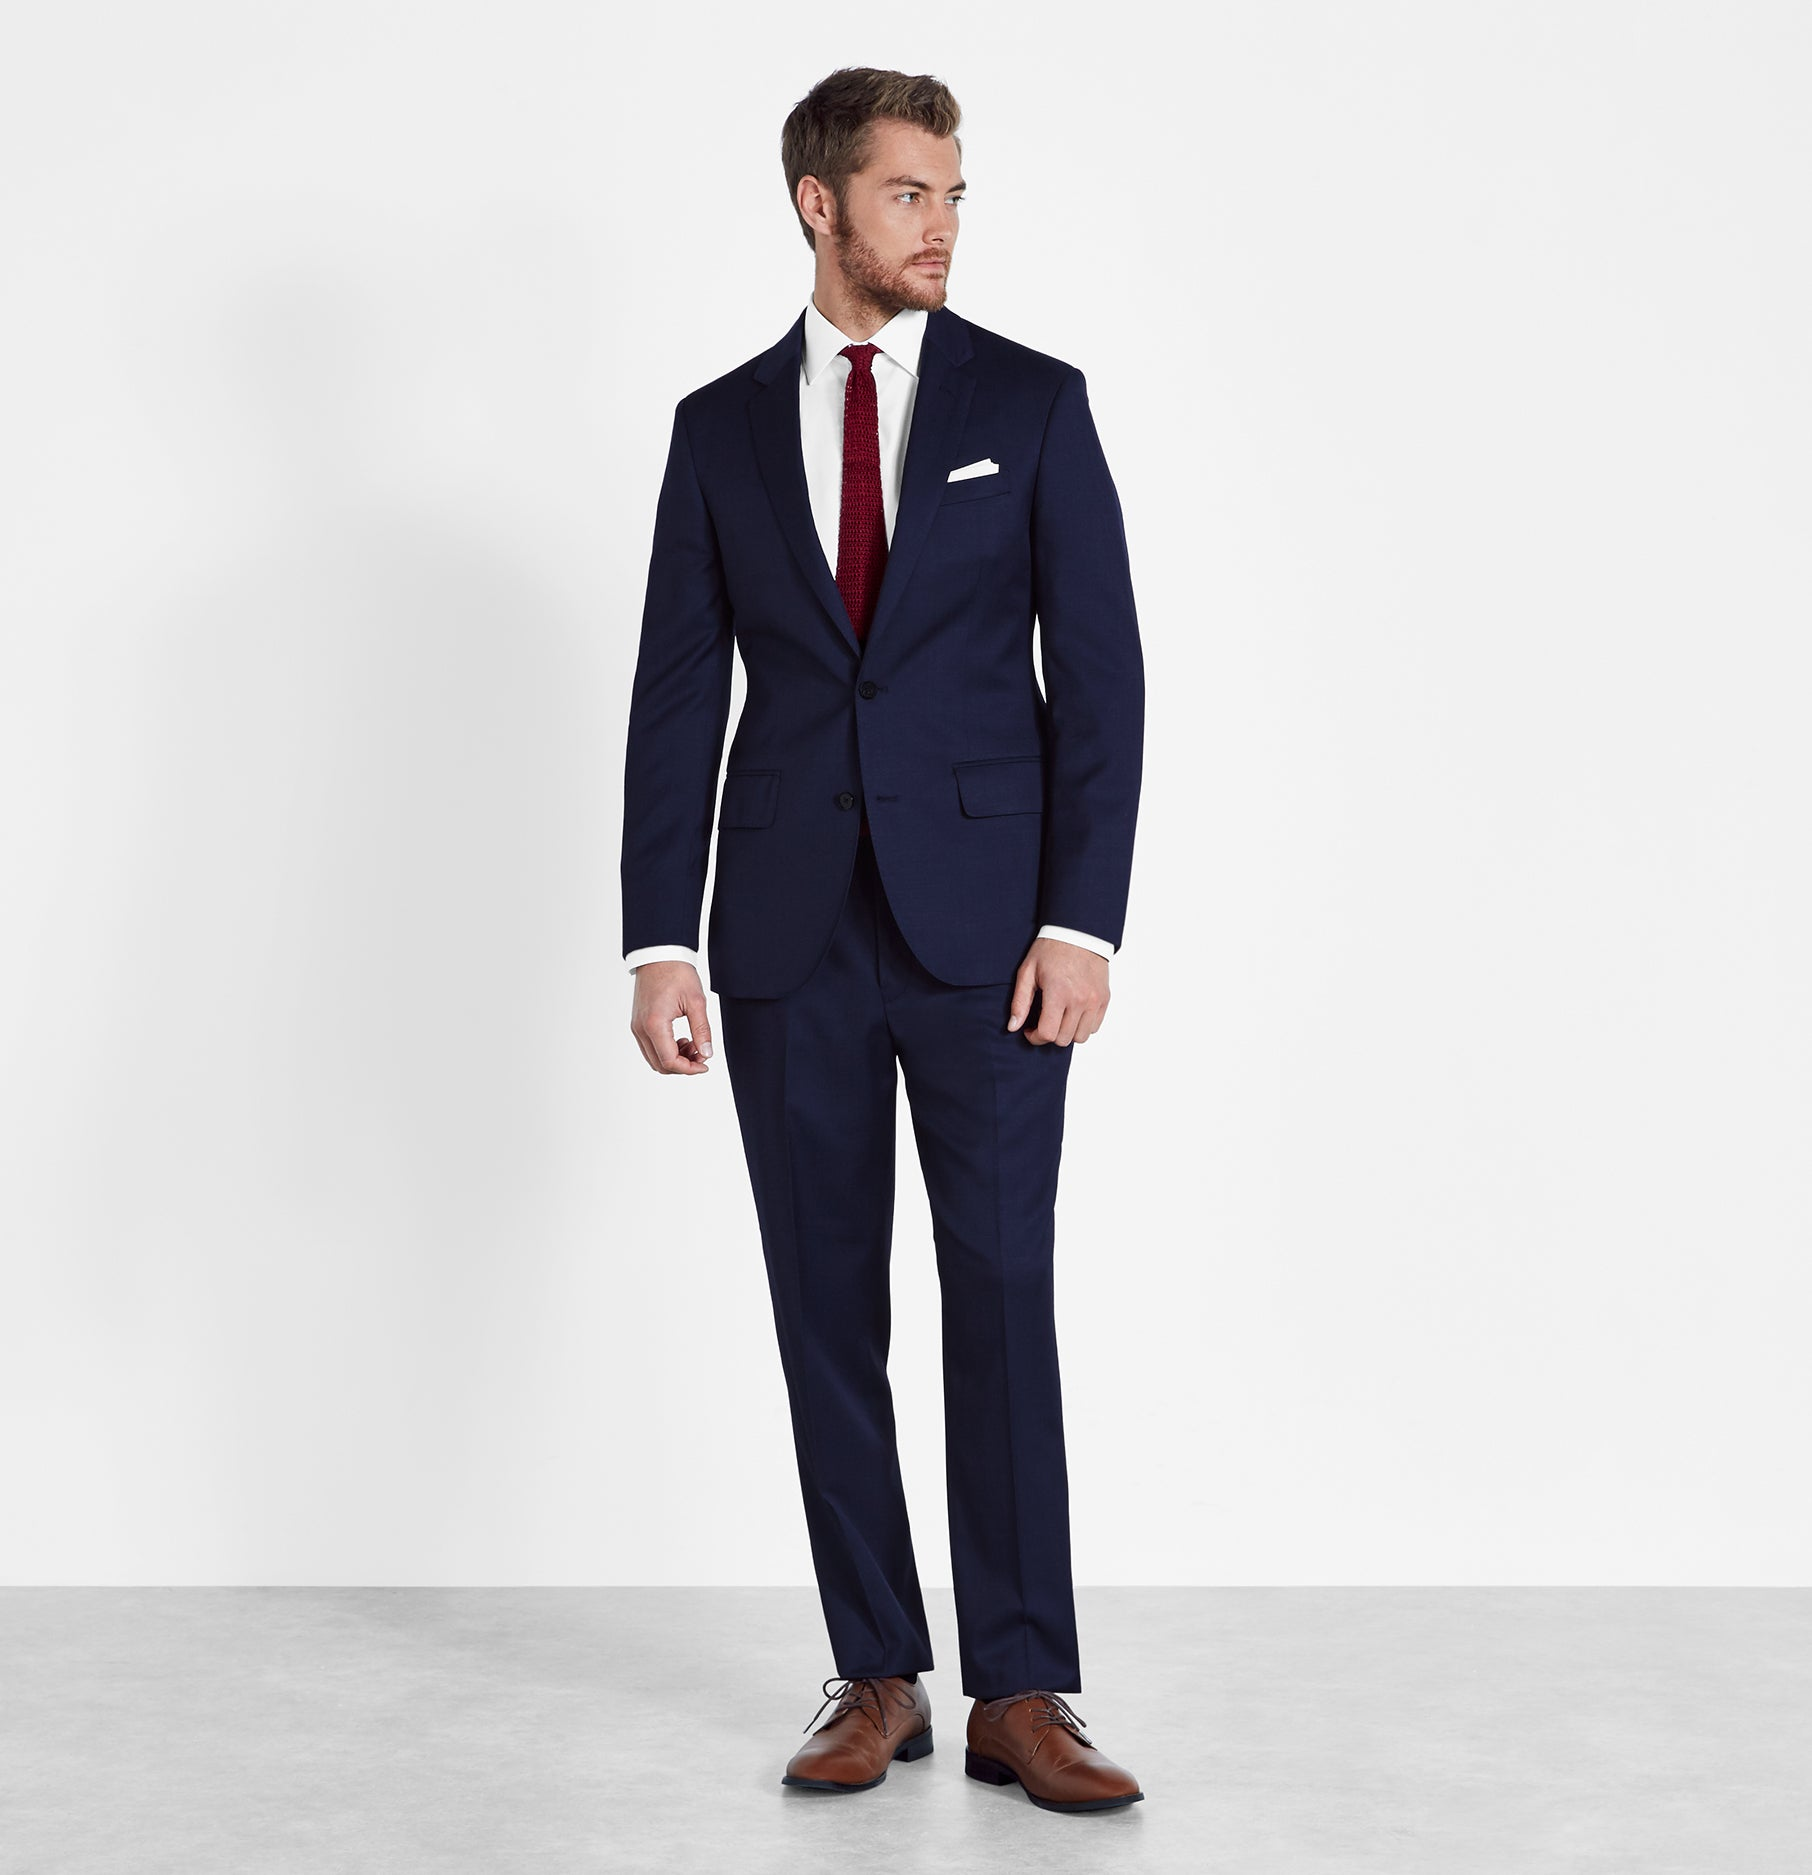 Get your tuxedo rental today from Men's Wearhouse. View our collection of men's tuxedos and formalwear for weddings, proms & formal events. Rent a tux now! BLACK By Vera Wang Black Notch Lapel Tuxedo () BLACK by Vera Wang Black Vest Joseph Abboud Navy Satin Edged Notch Lapel. $ $ 99 $ 99 Perfect Fit Rewards.